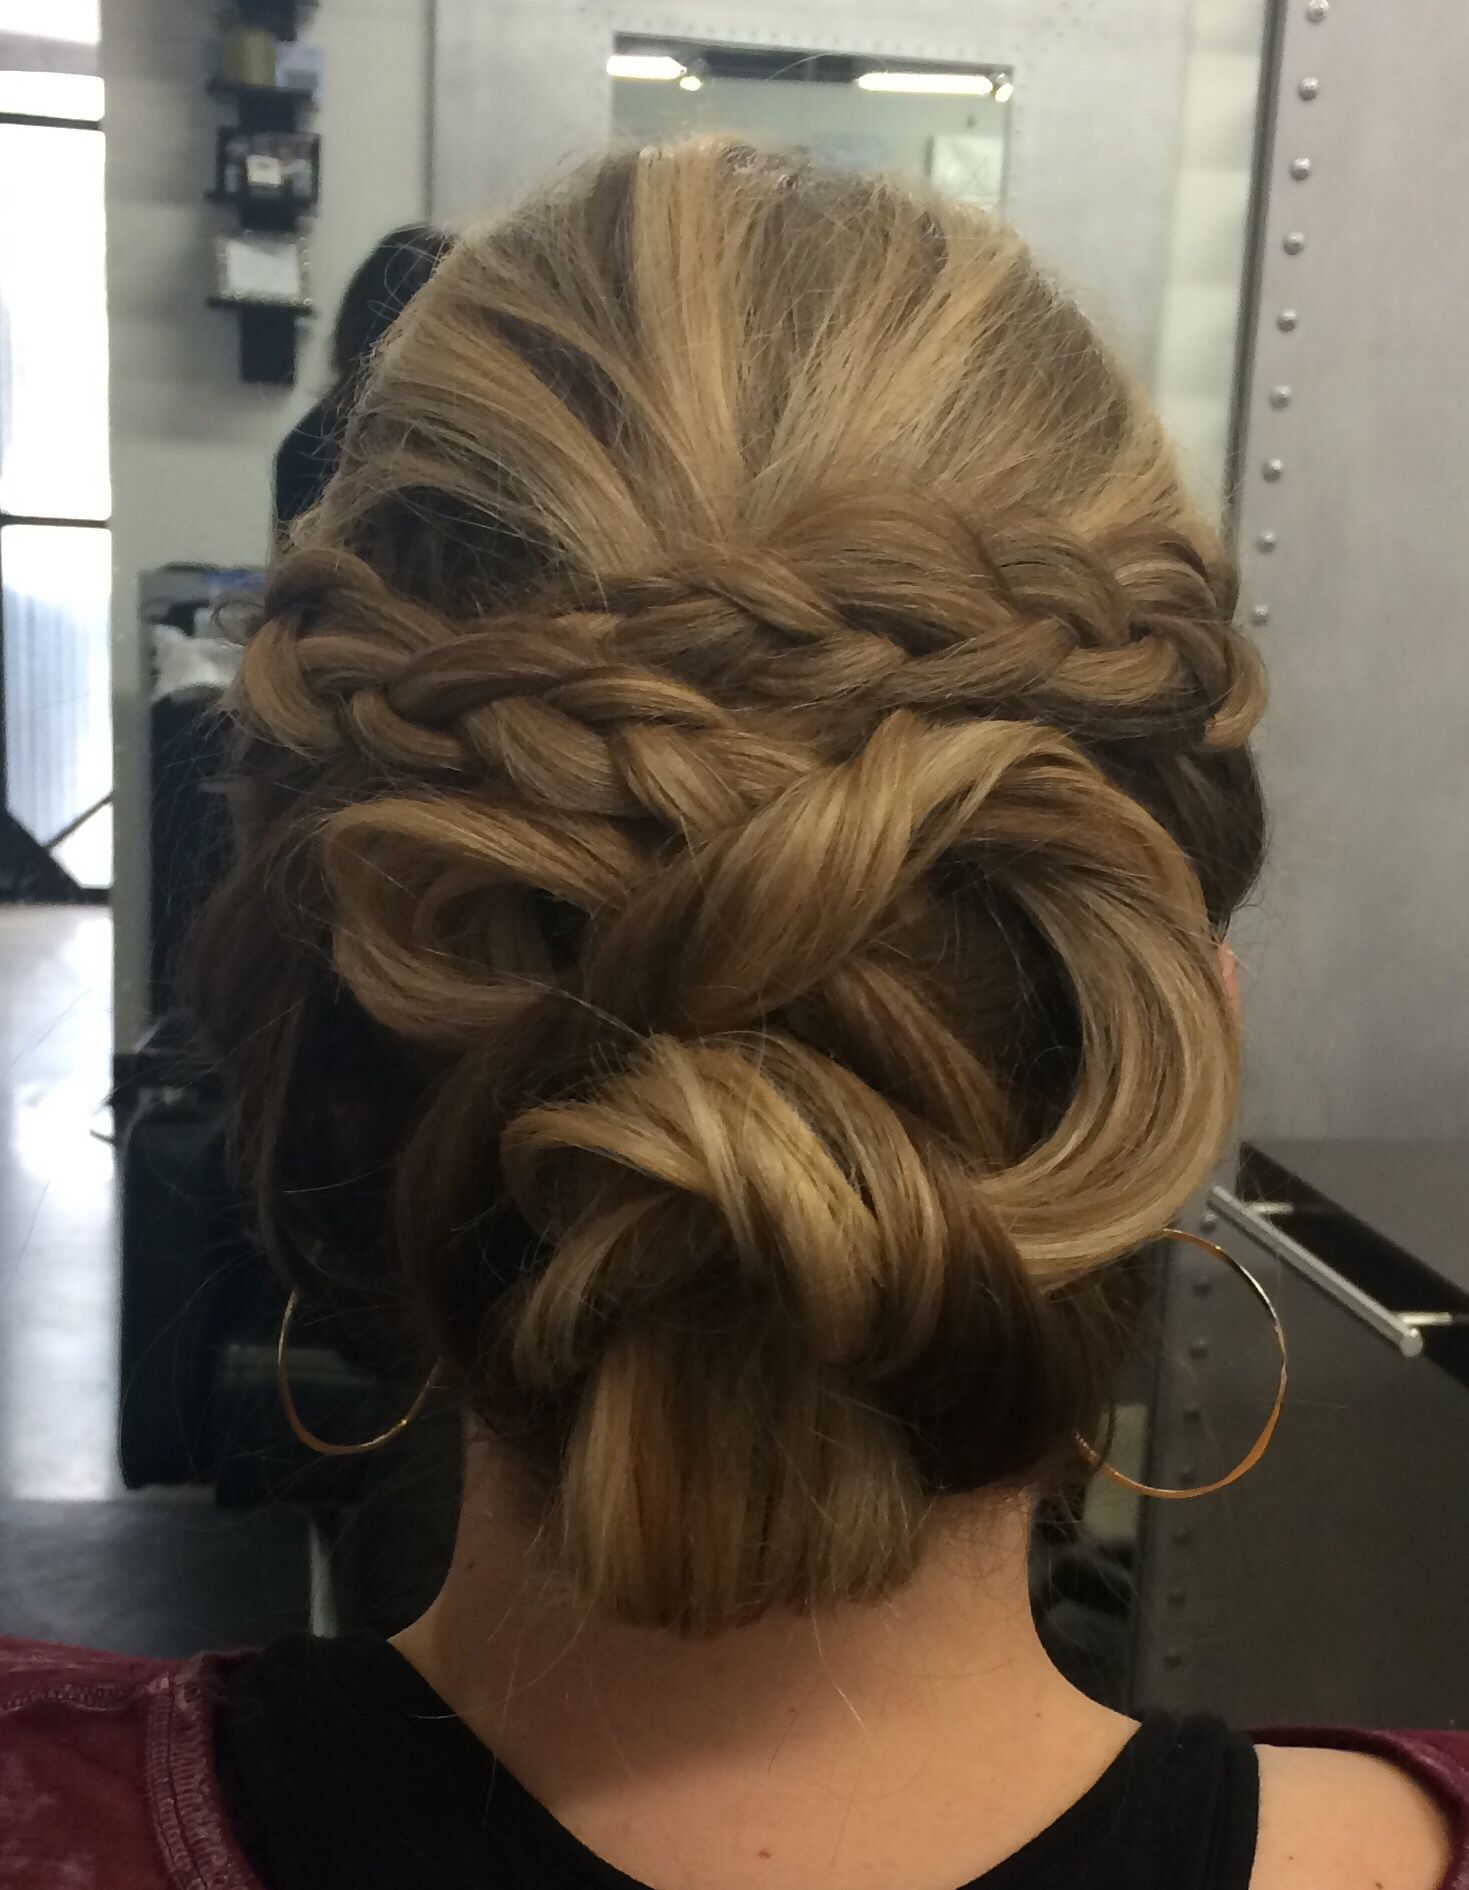 Braided updo hair by amanda pinterest updo